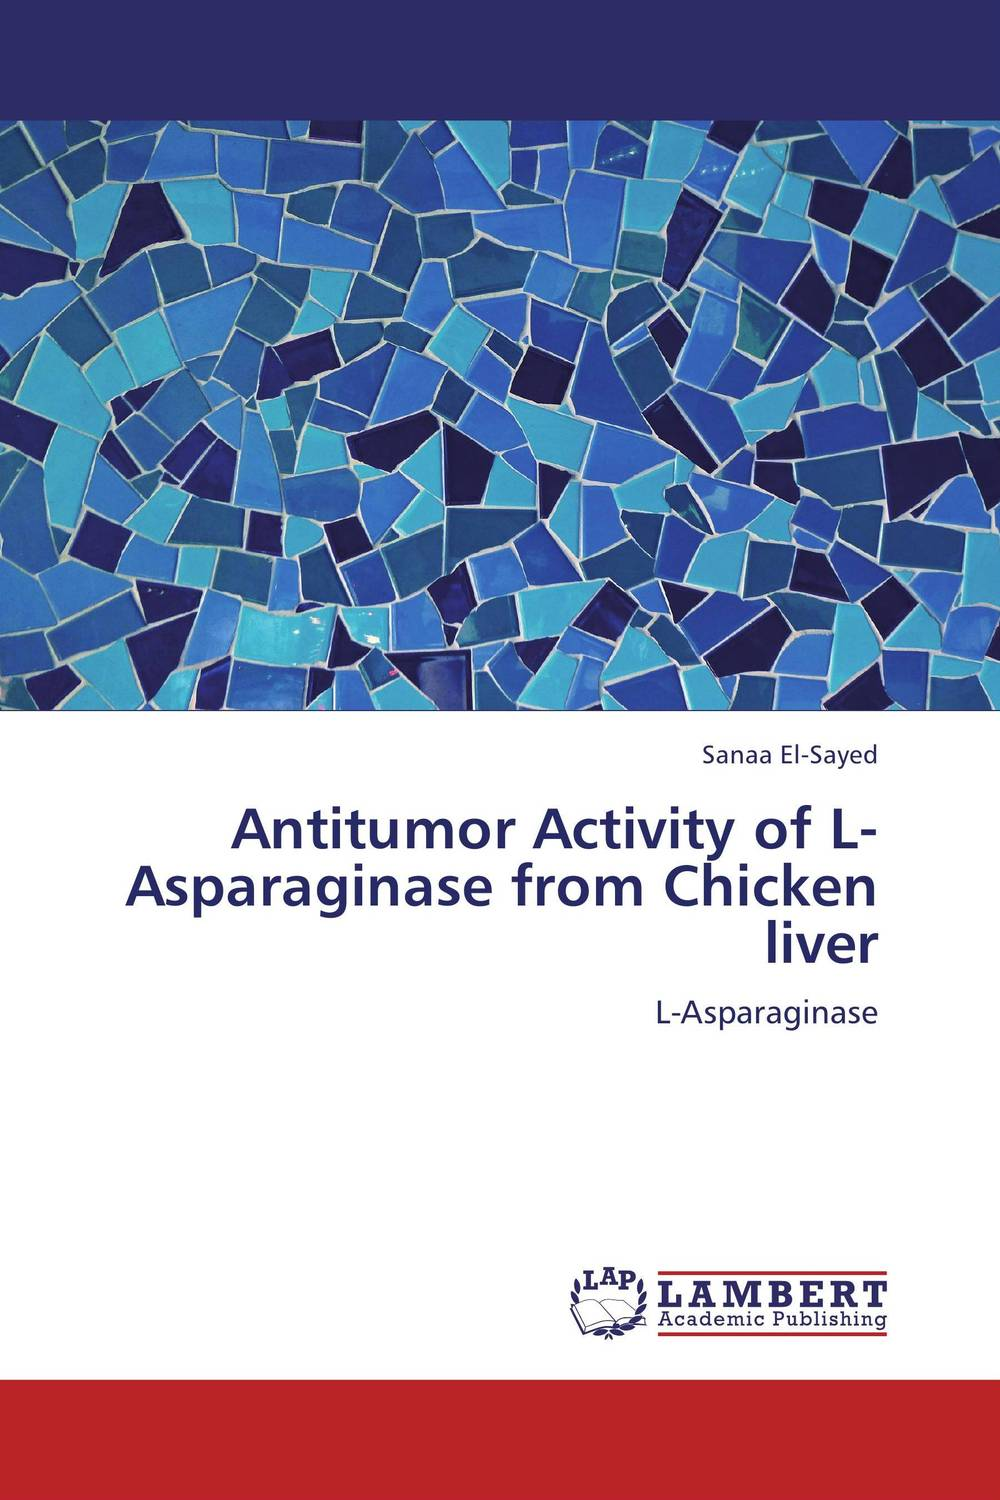 Antitumor Activity of L-Asparaginase from Chicken liver using enzyme from novozyme